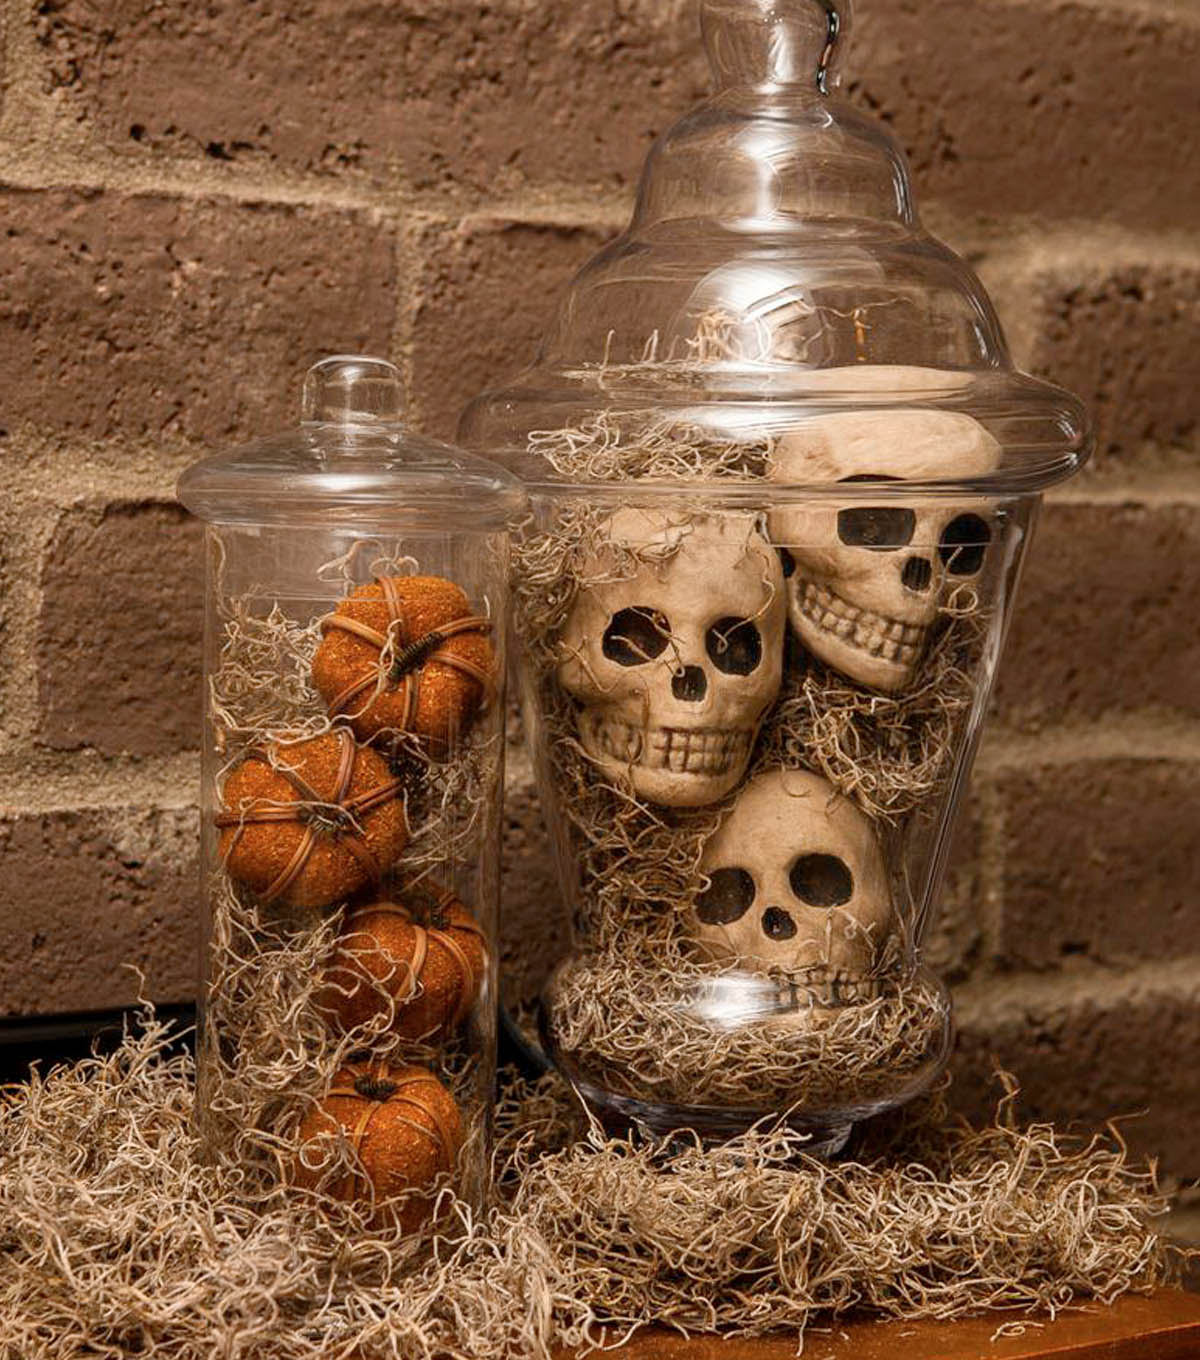 Apothecary Jars Add Panache to Everyday Decorations | DIY Indoor Halloween Decorating Ideas